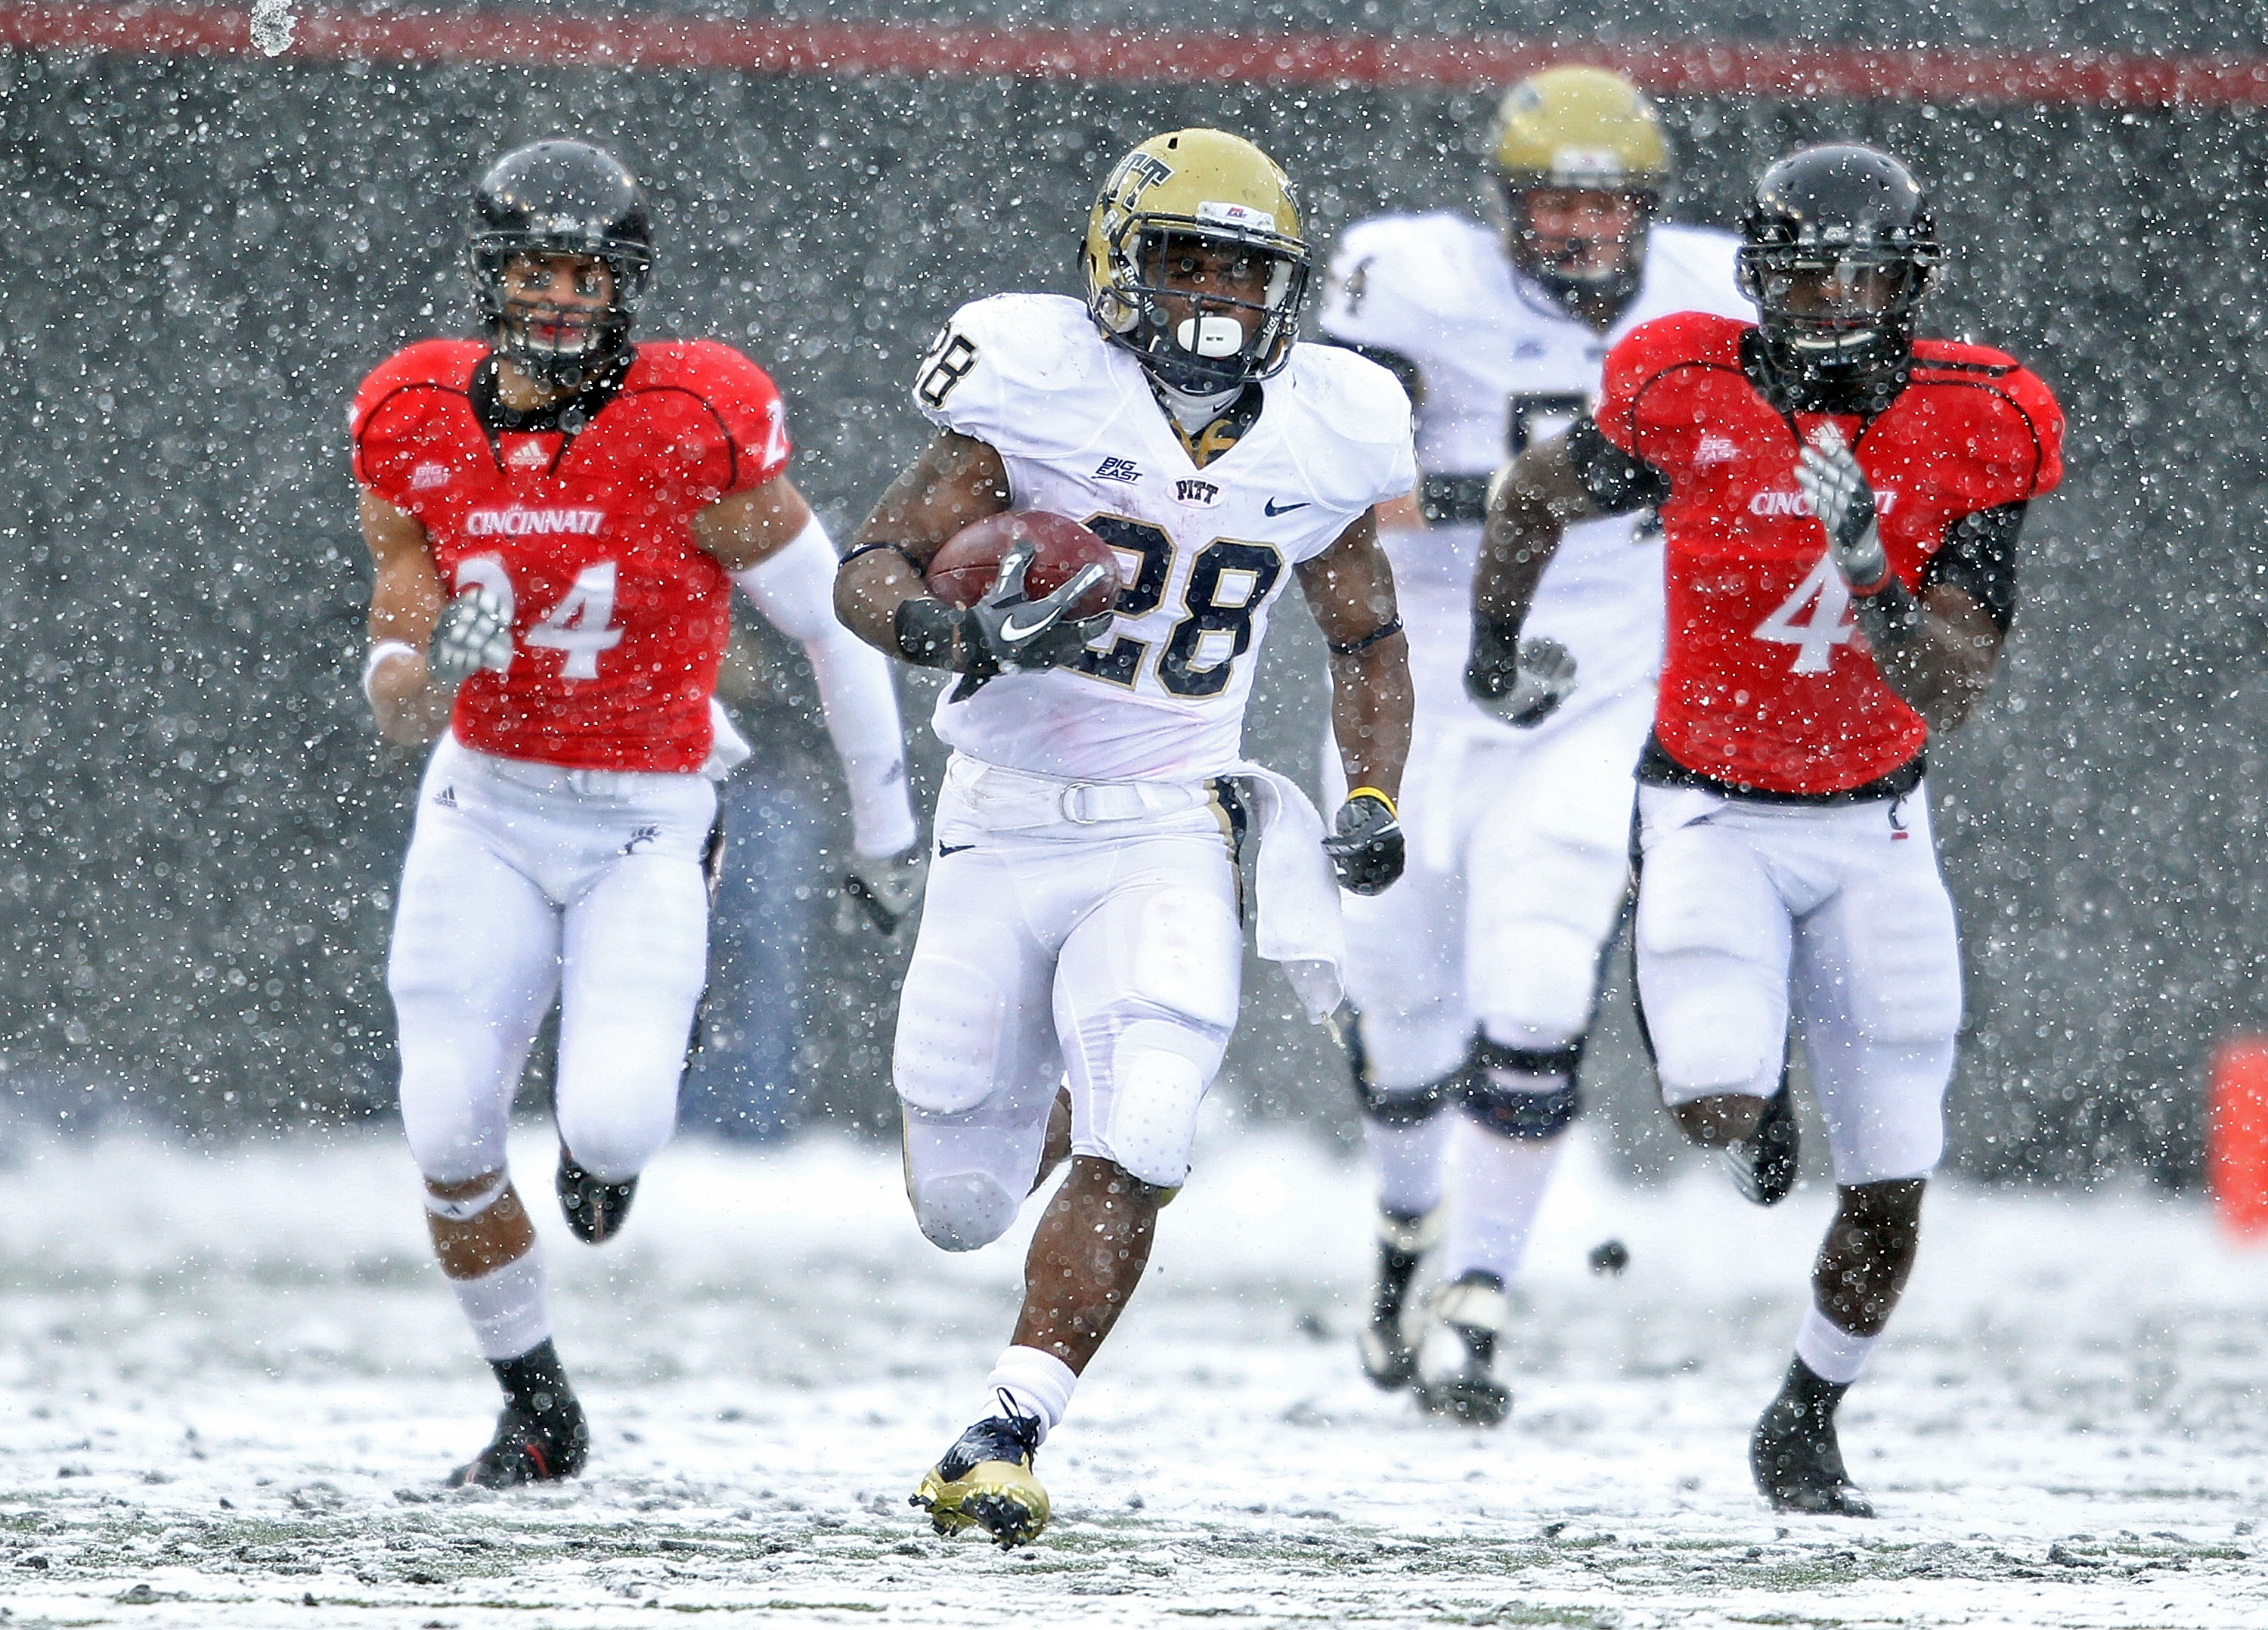 Could this be the next great Mike Shanahan running back to go late in the draft?